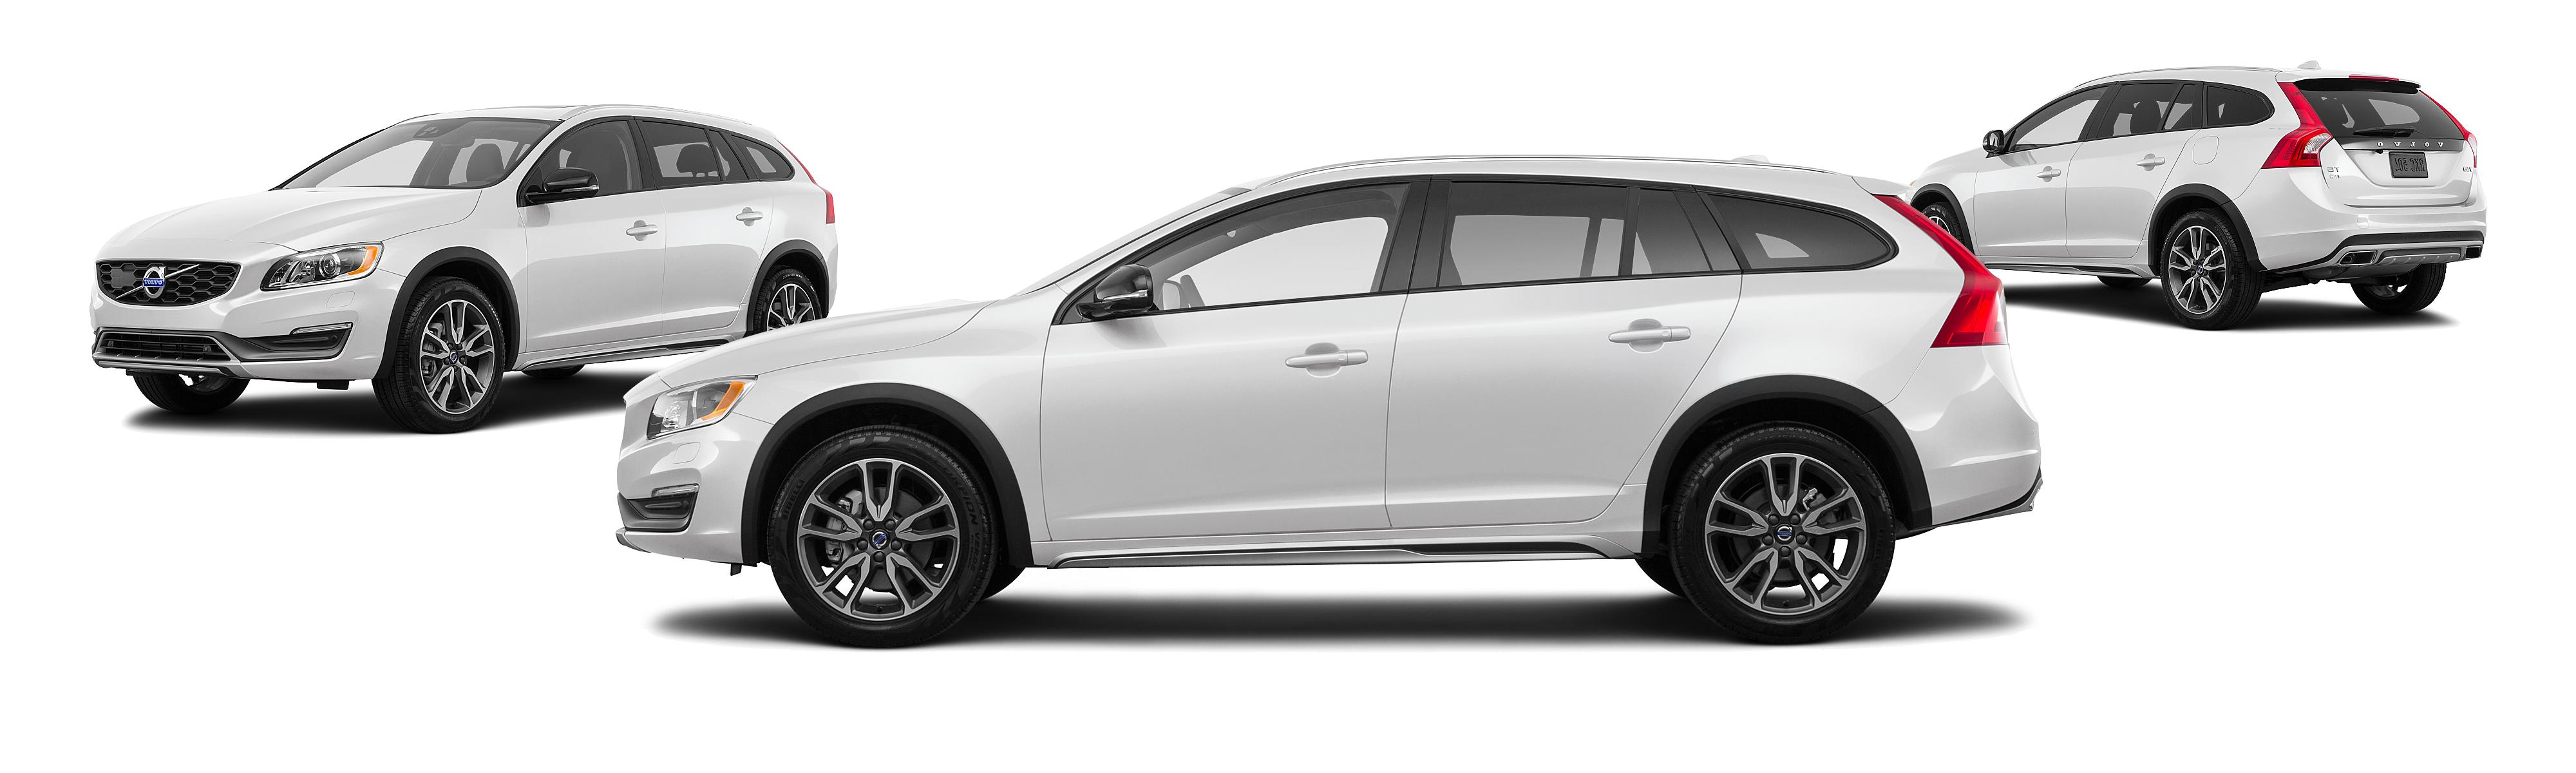 ext volvo professionals side nj sales specials awd leasing deals lease